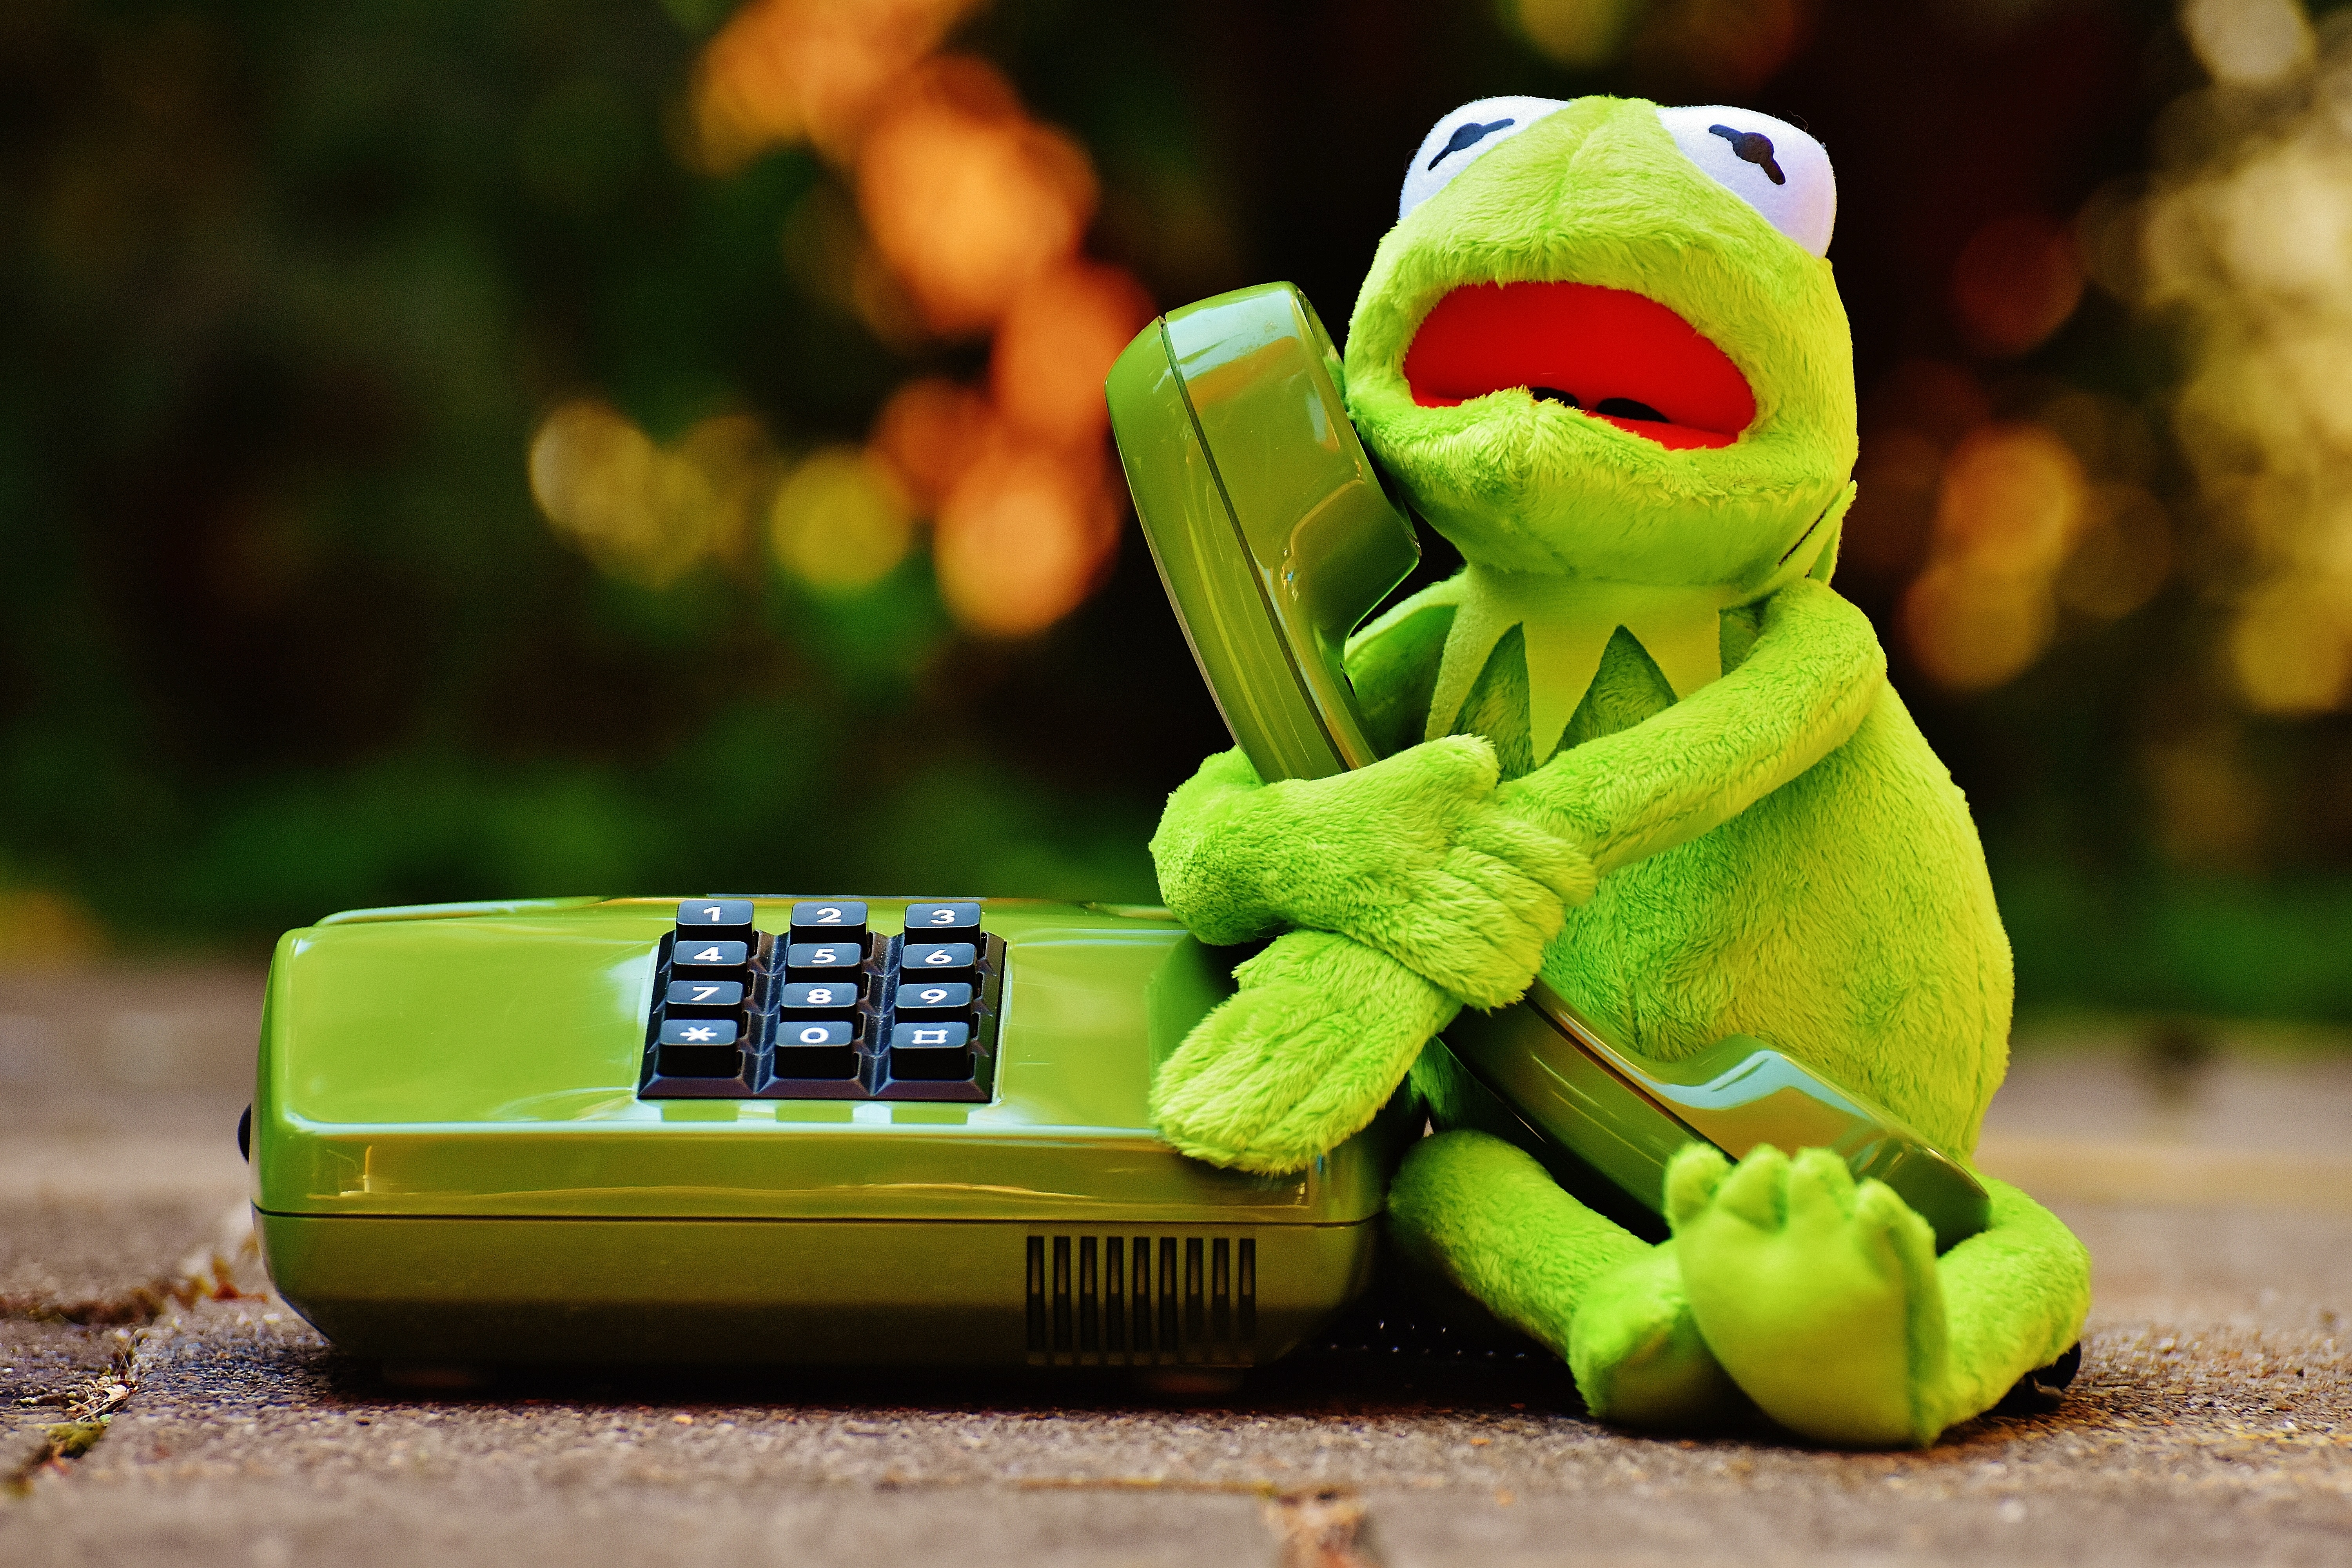 Black Phone Wallpaper Kermit The Frog Holding Green Desk Phone 183 Free Stock Photo